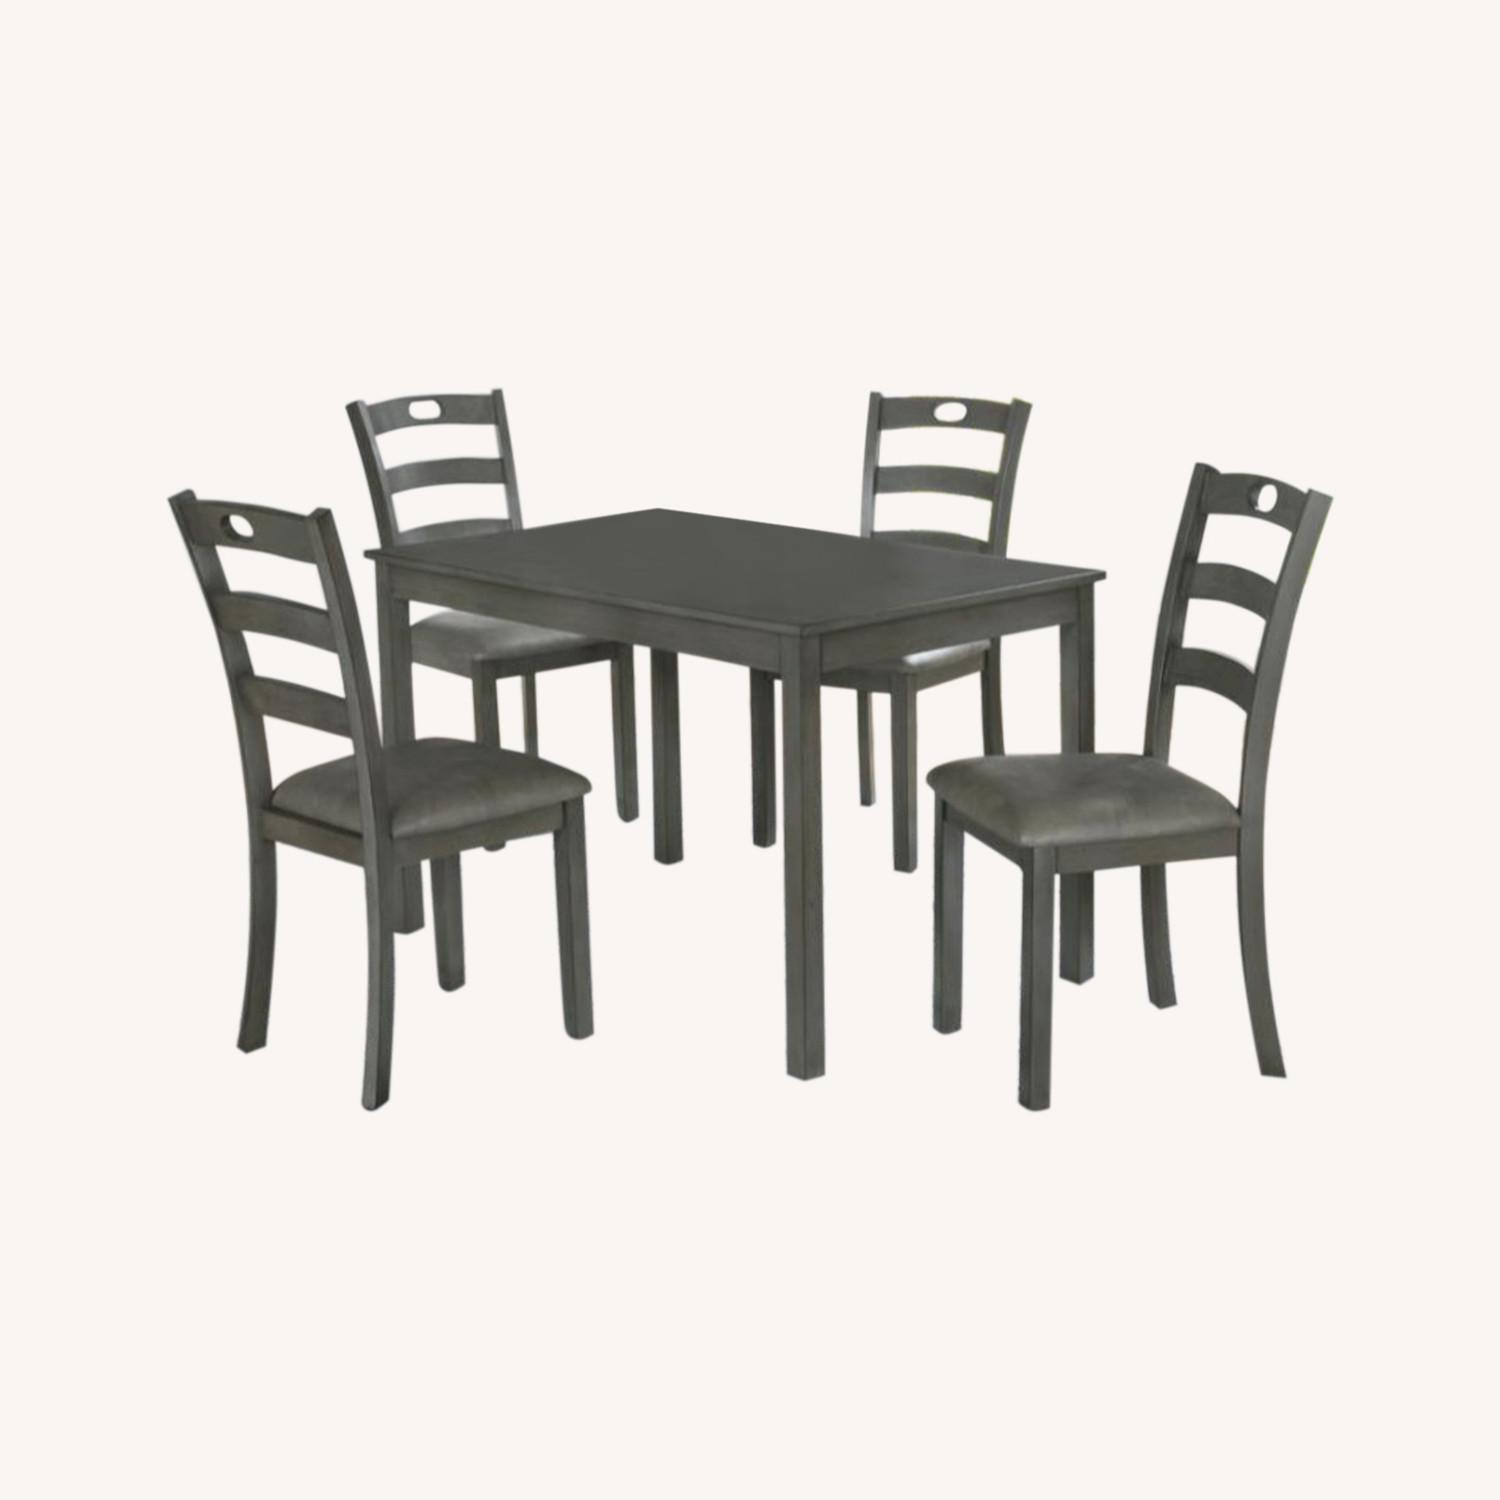 5-Piece Dining Set In Grey Wood & Fabric Finish - image-0